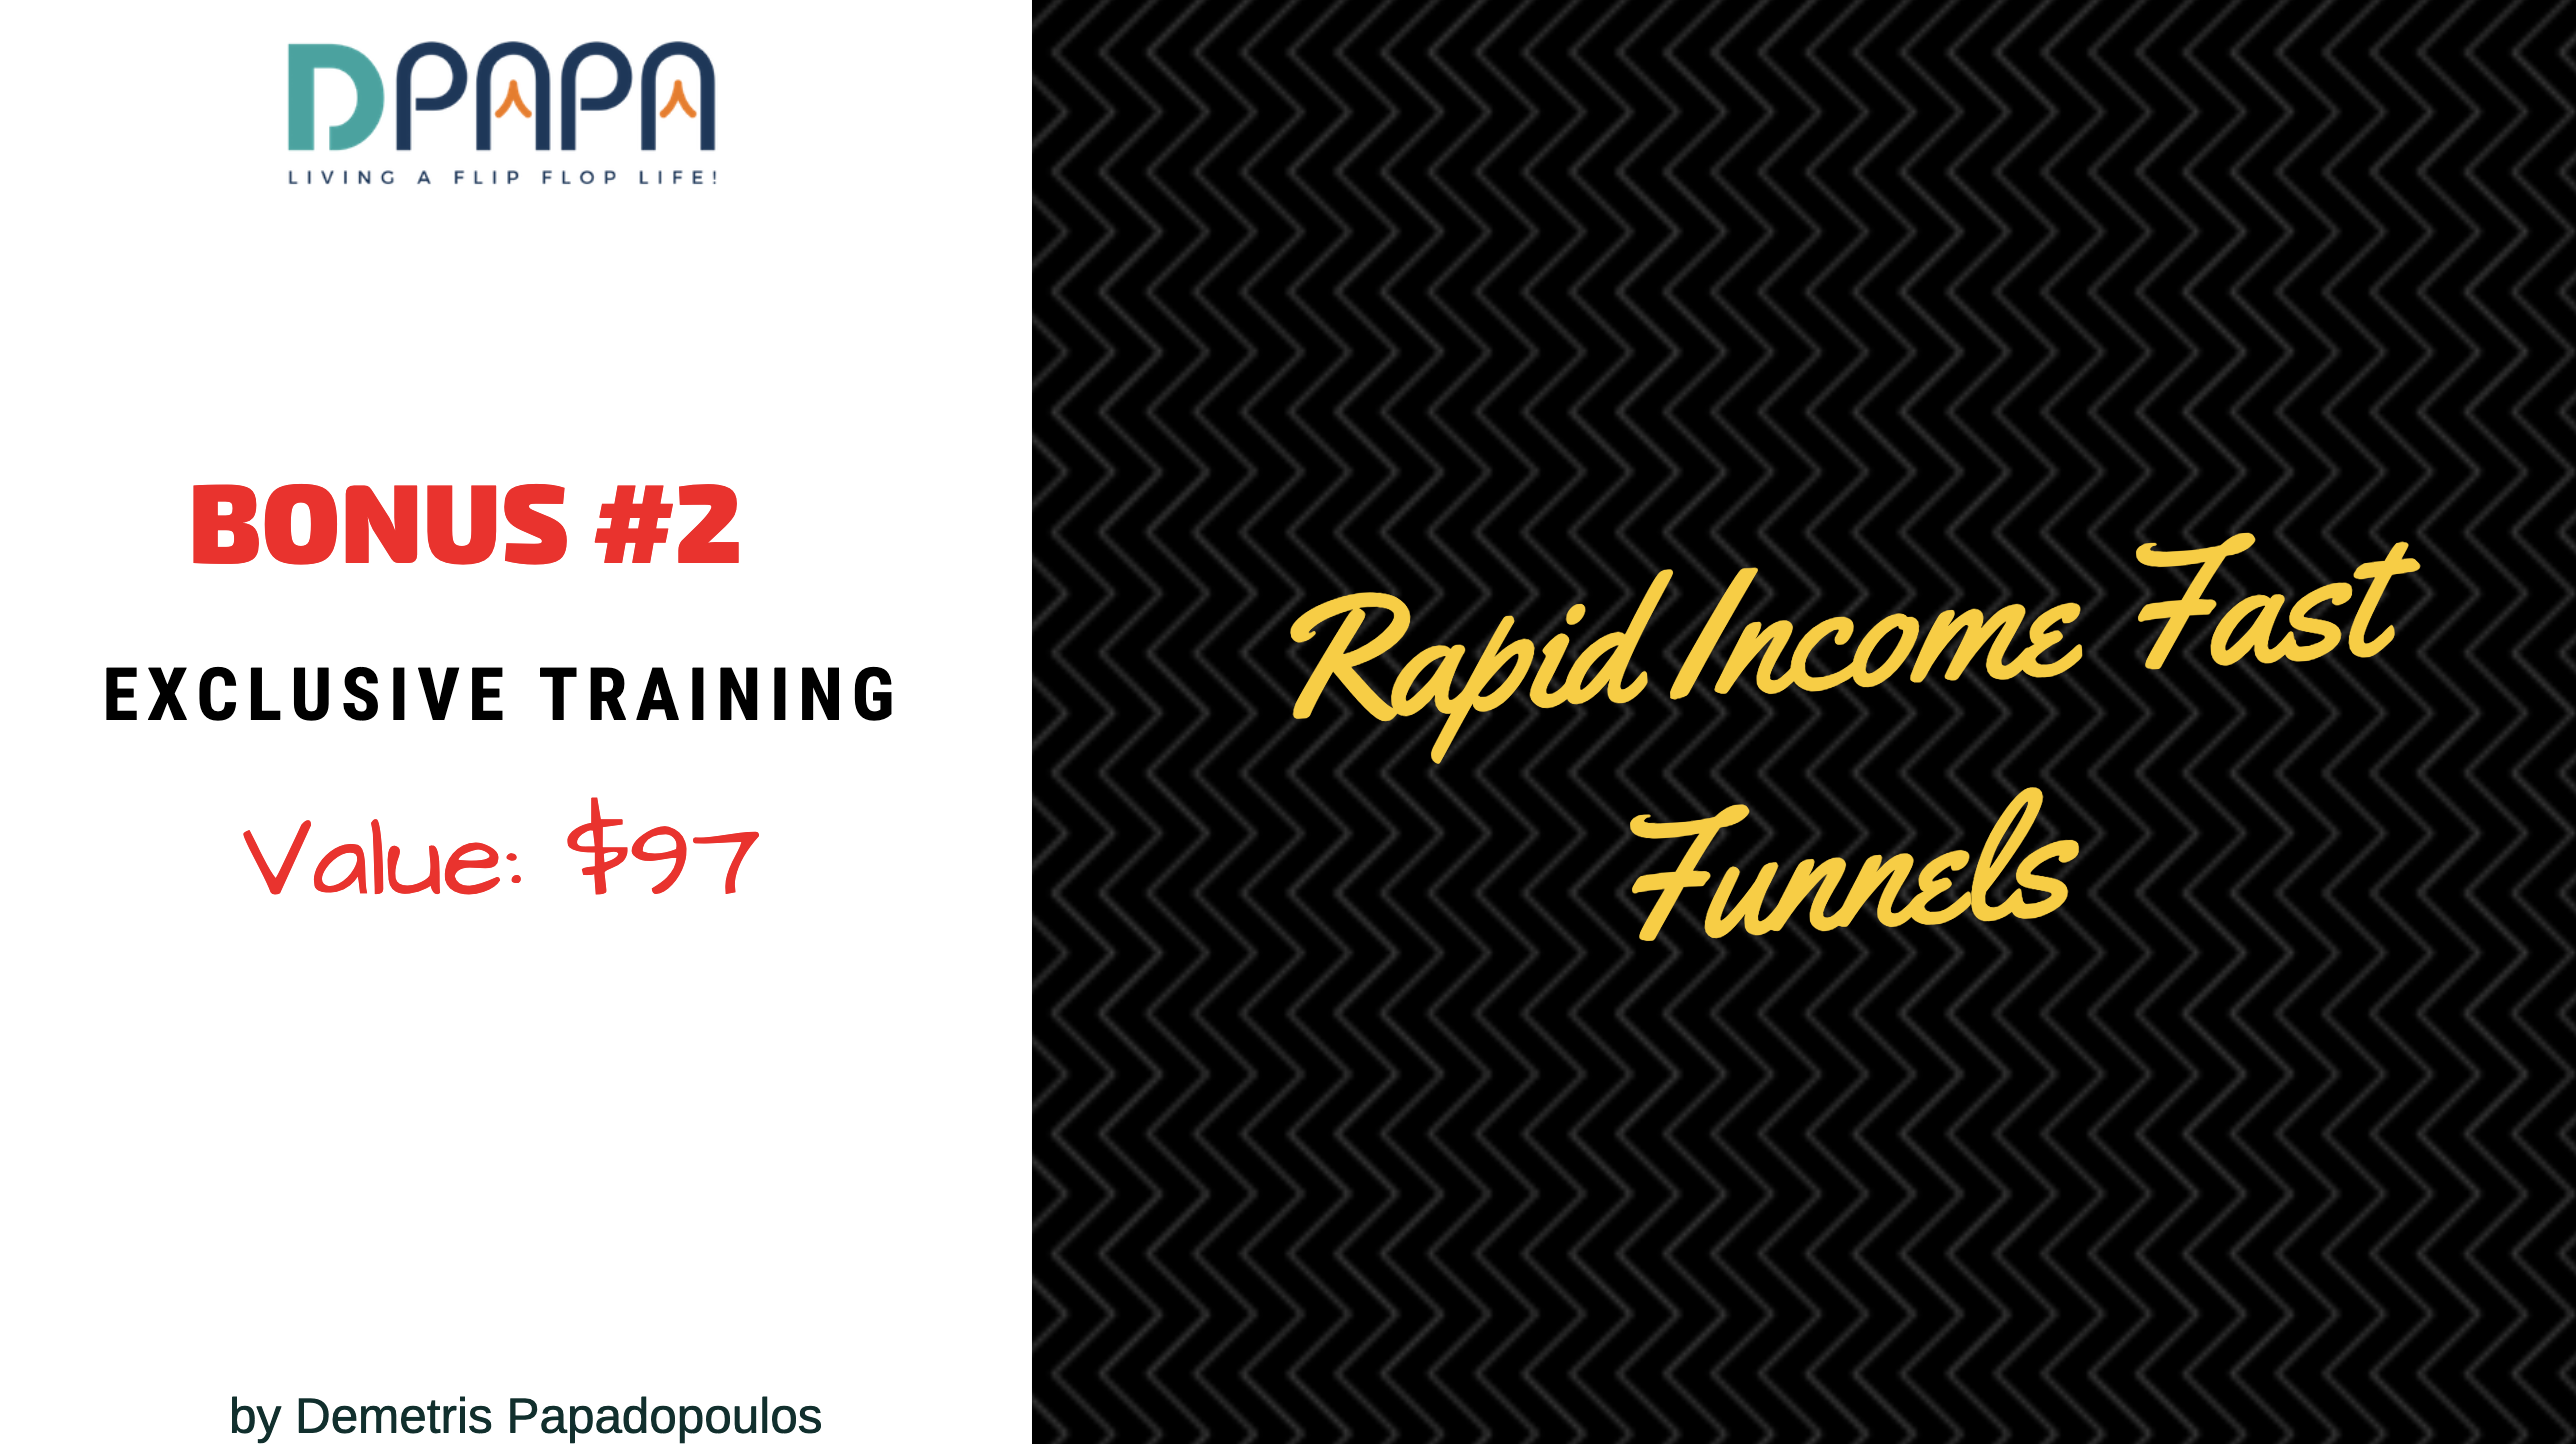 How To Combine CPA Affiliate Marketing & FB ads to Turn $5 into $163 in 30 min 8